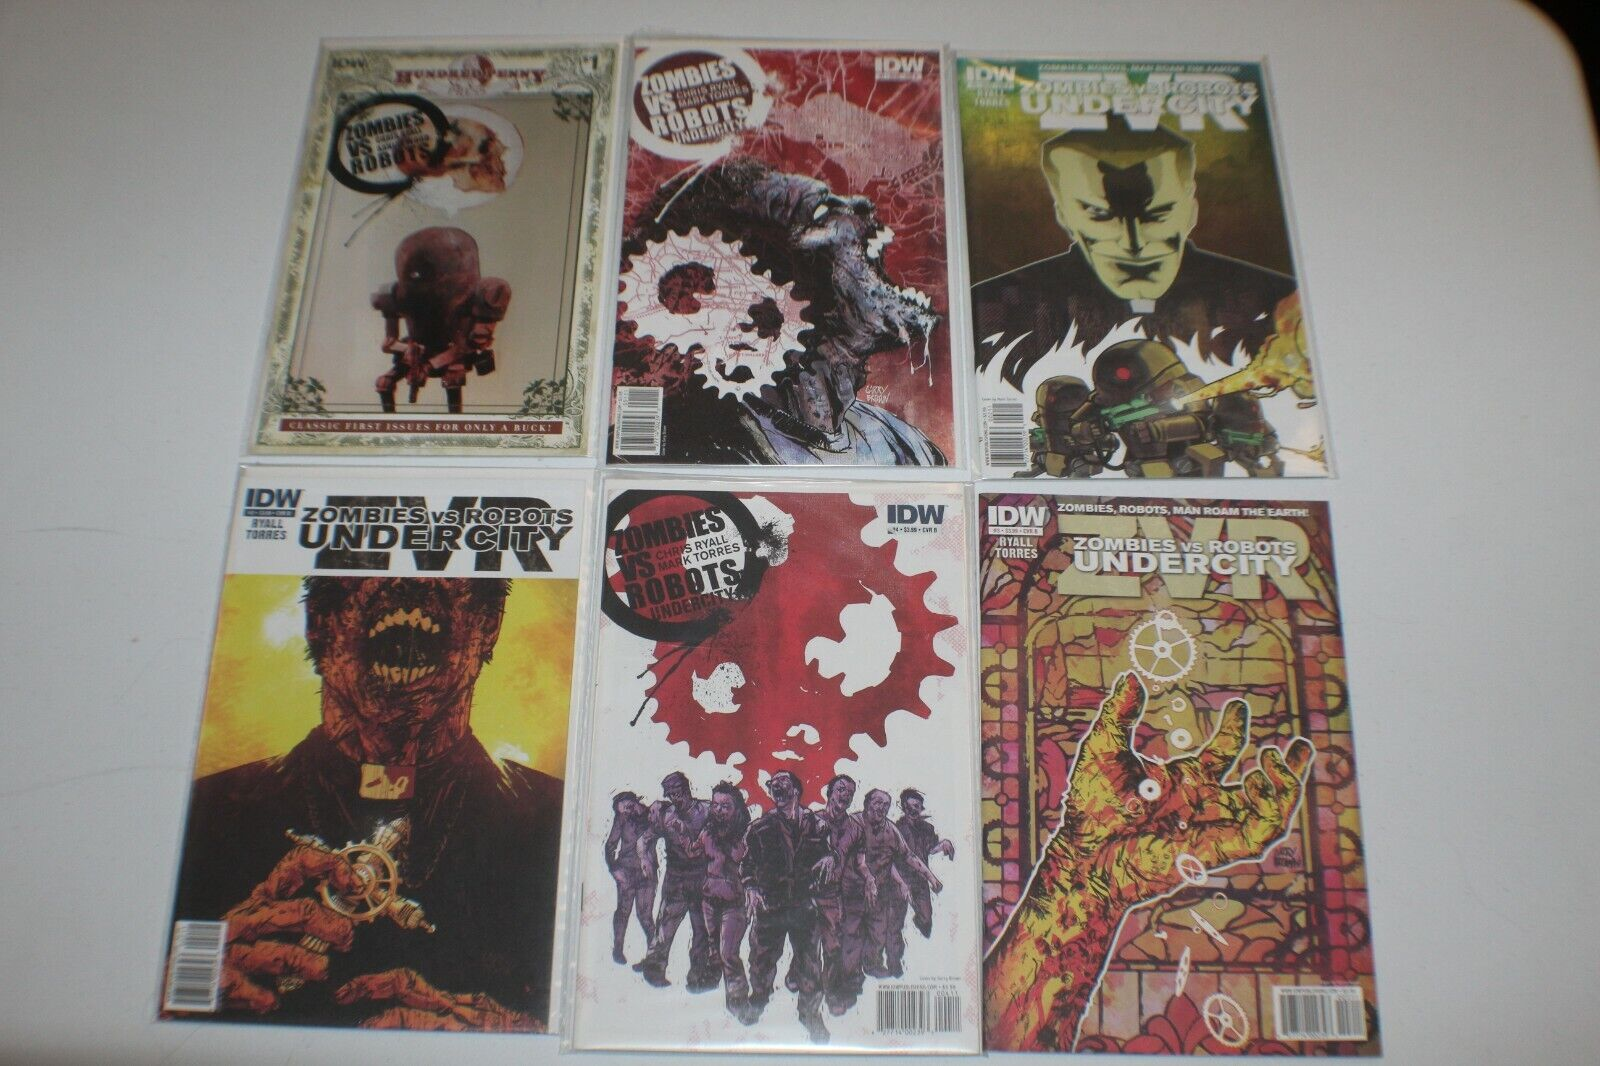 Zombies Vs Robots Variants Cover 1 / 1 B / 2 A & B 4 B 3B NM IDW